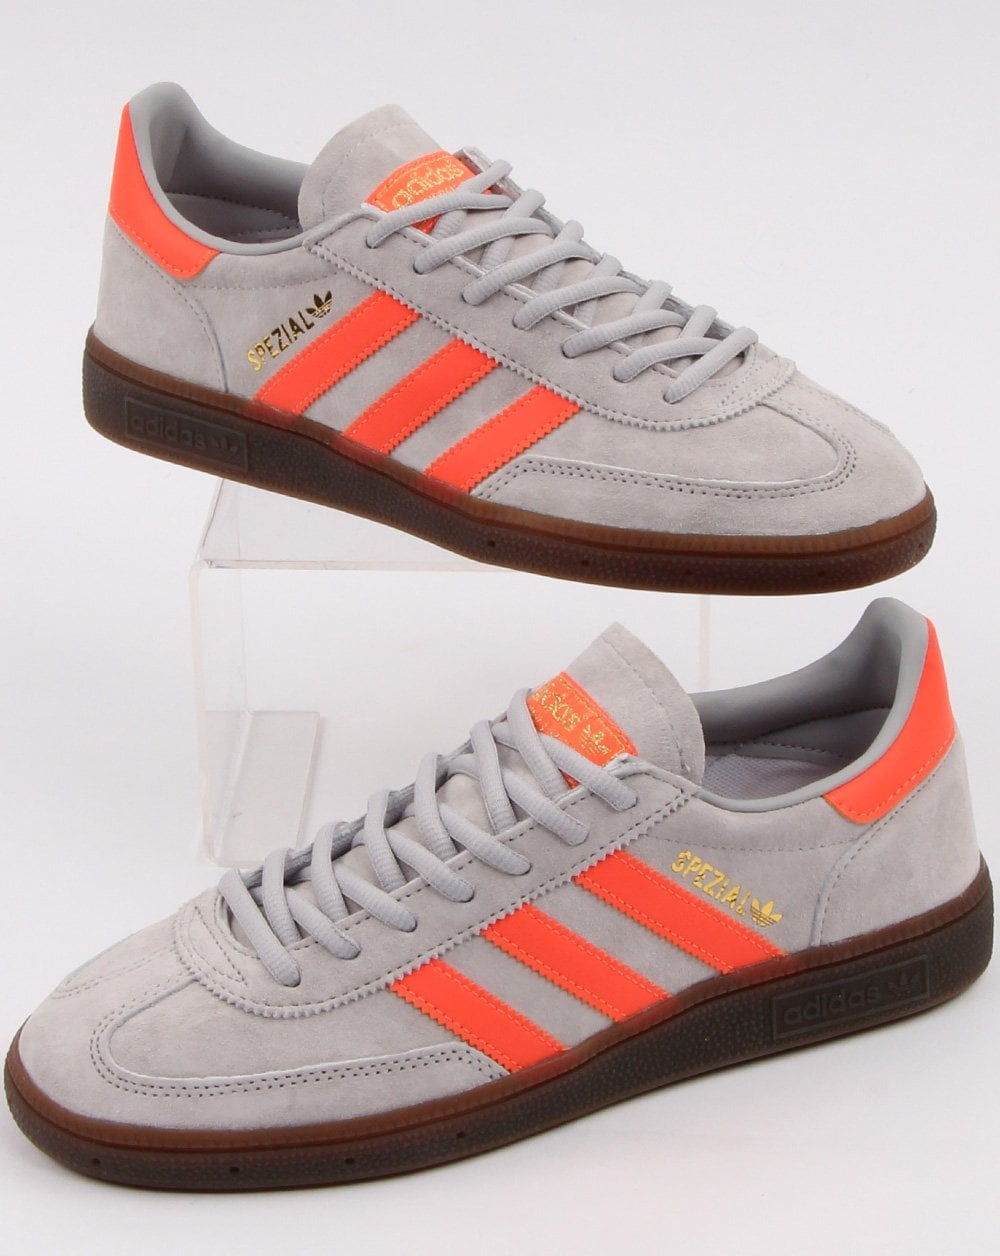 Obediencia Noble dueña  Adidas Spezial Trainers Grey, Coral, Orange - Shop Adidas At 80sCC